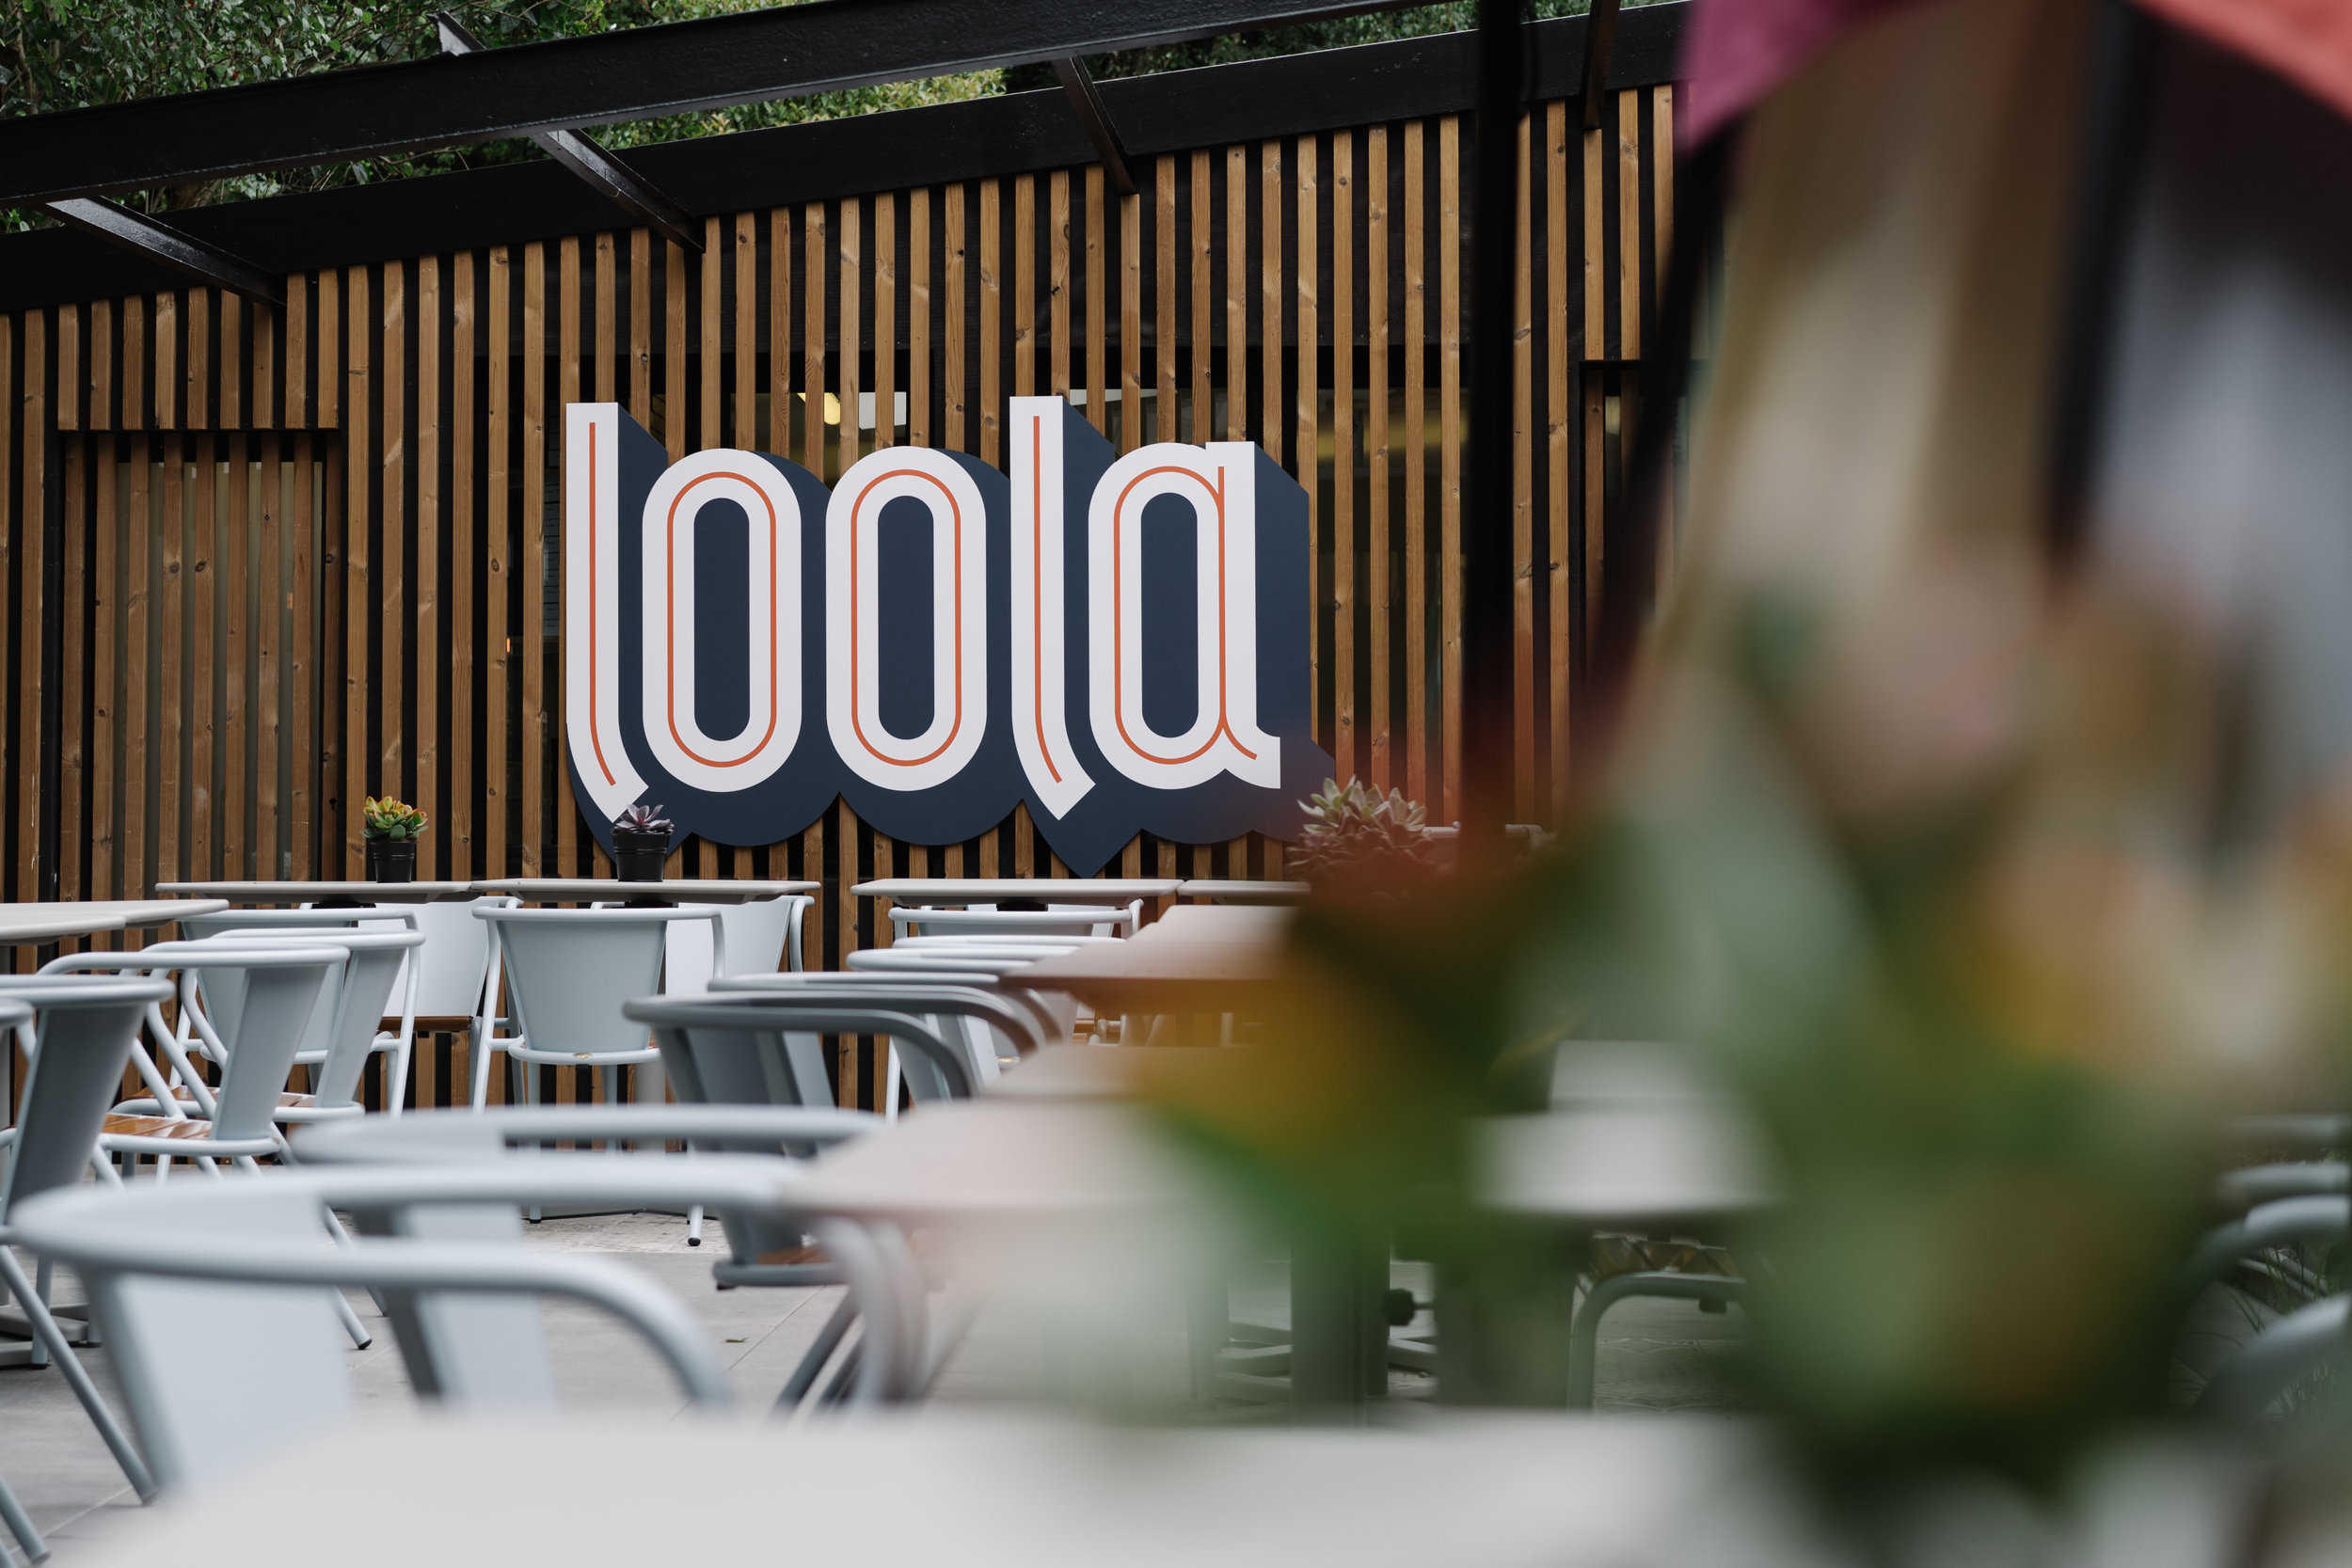 Loola / Boondael - A second Loola restaurant, a fresh pizza and salad bar located in Brussels (Boondael). If you like crunchy pizza and fresh salad, you need to try!